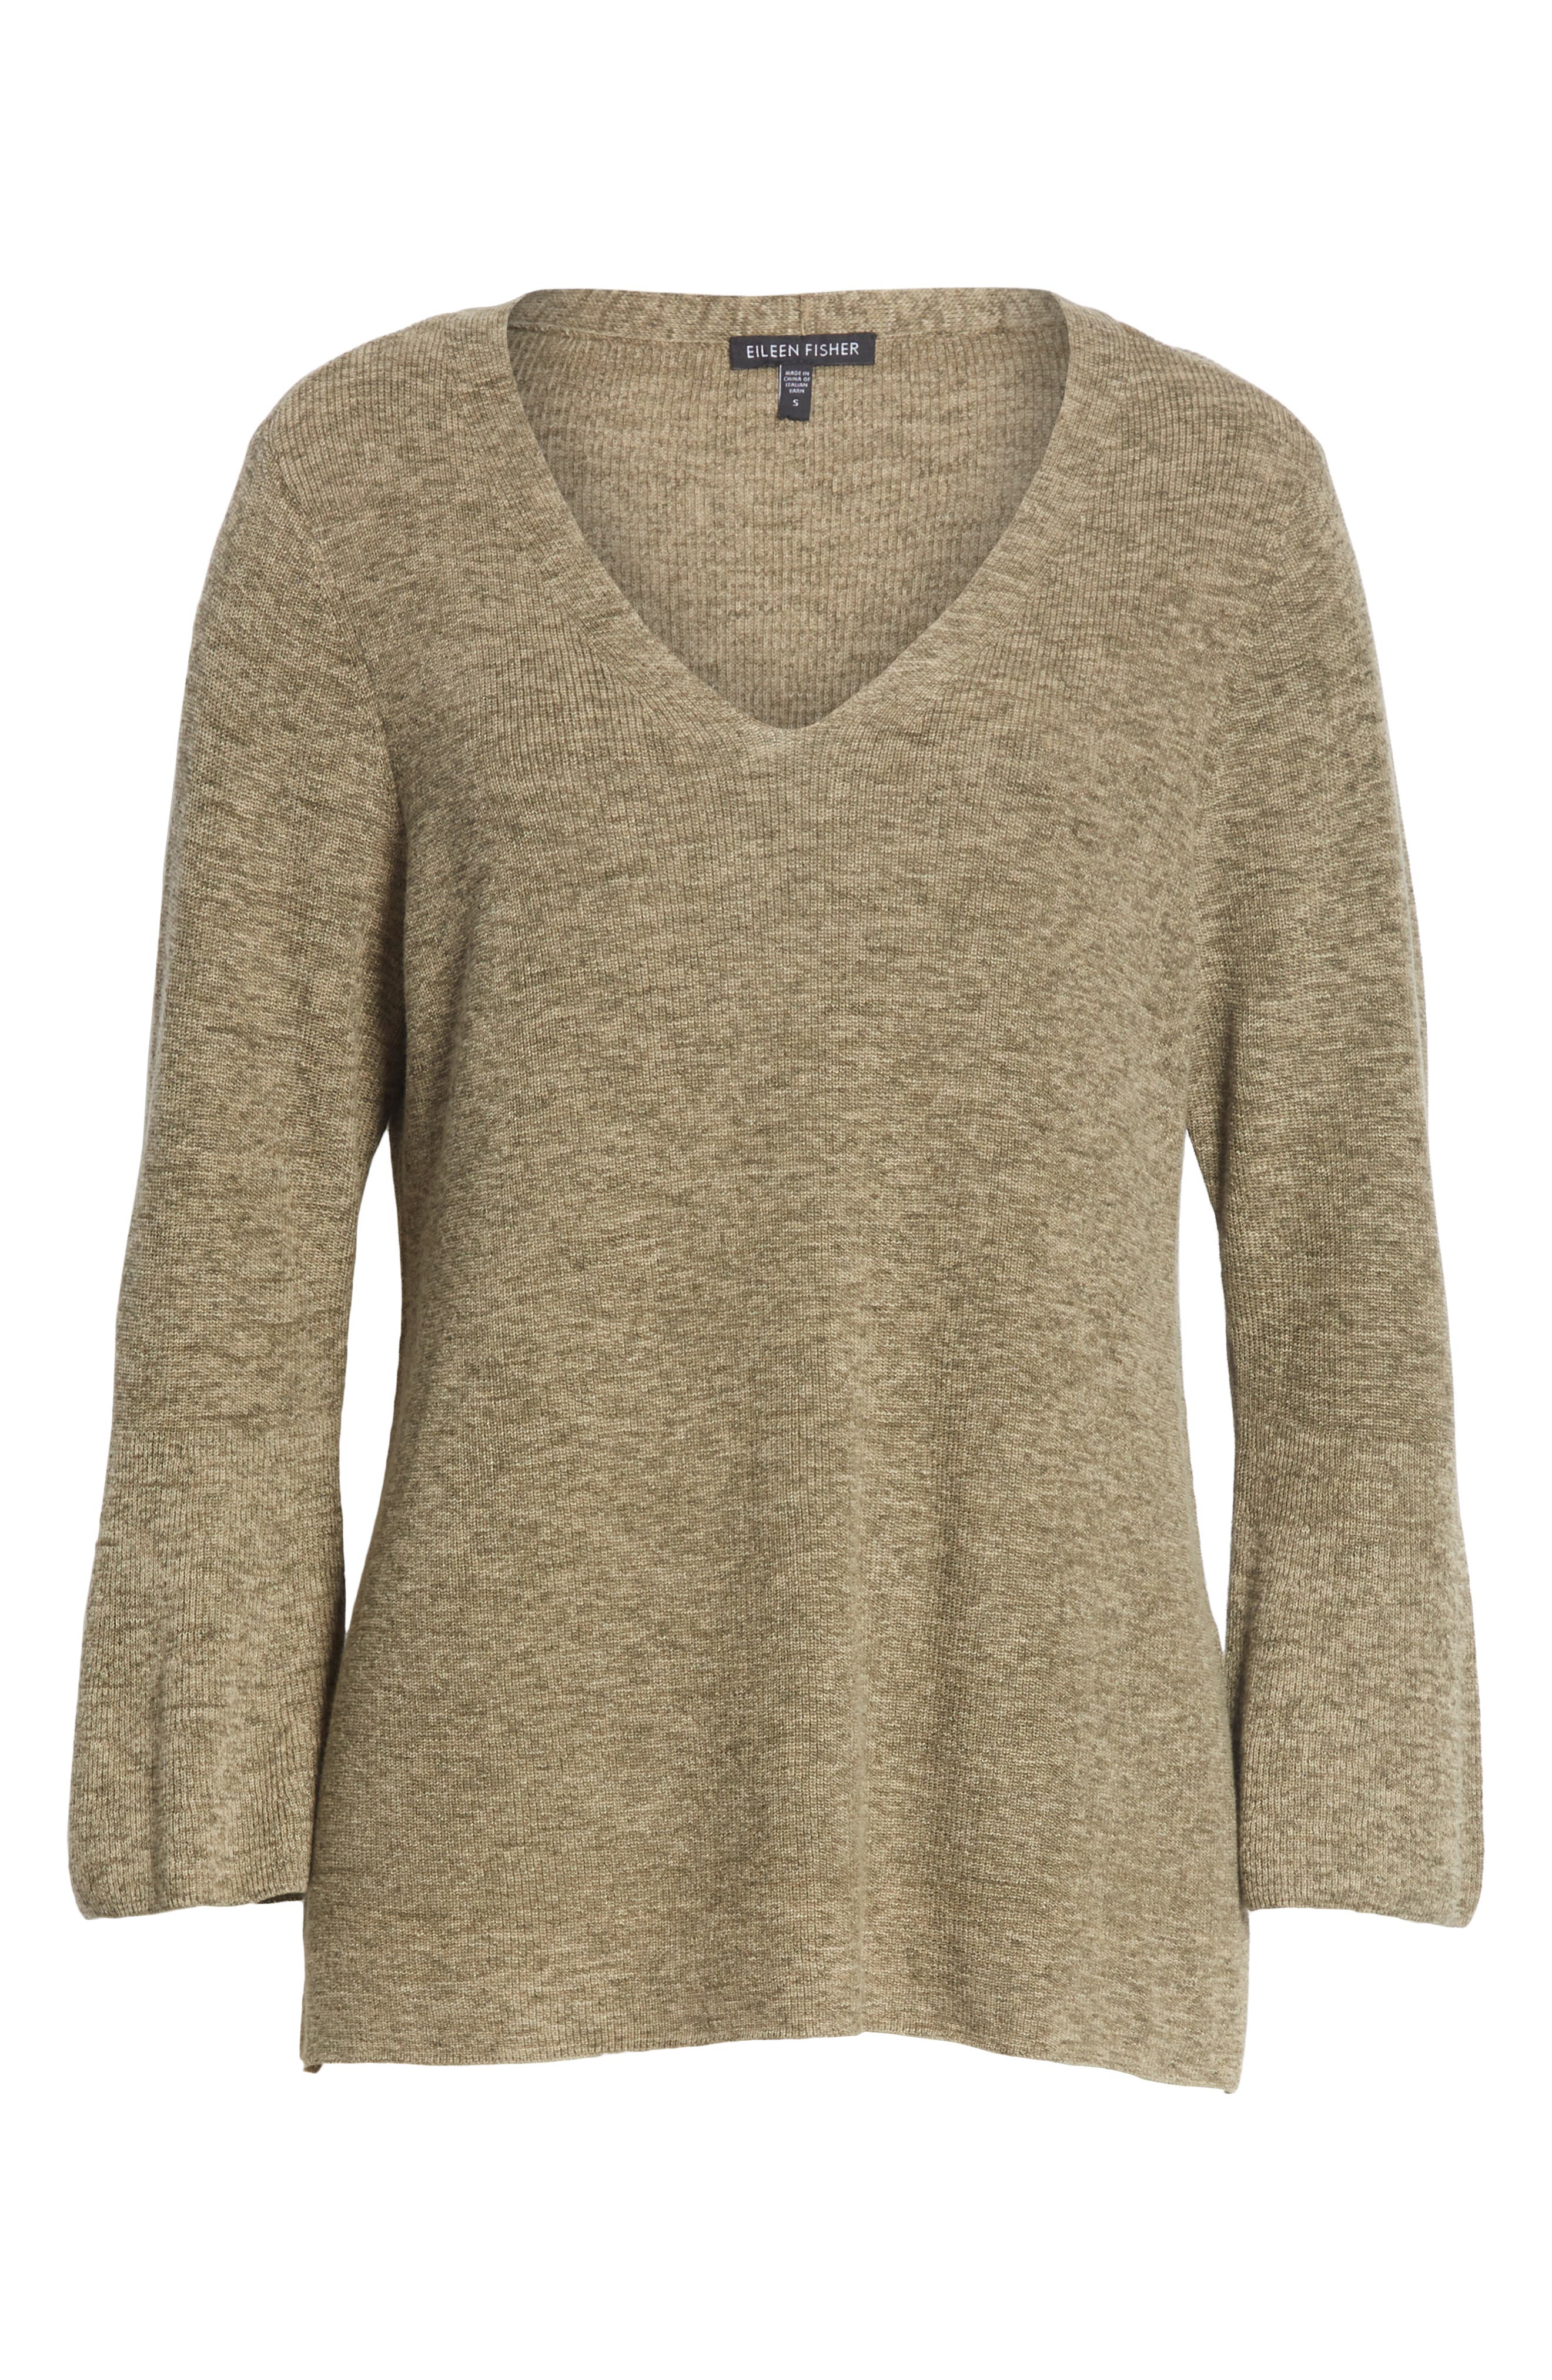 Bell Cuff Organic Cotton Sweater,                             Alternate thumbnail 6, color,                             OLIVE